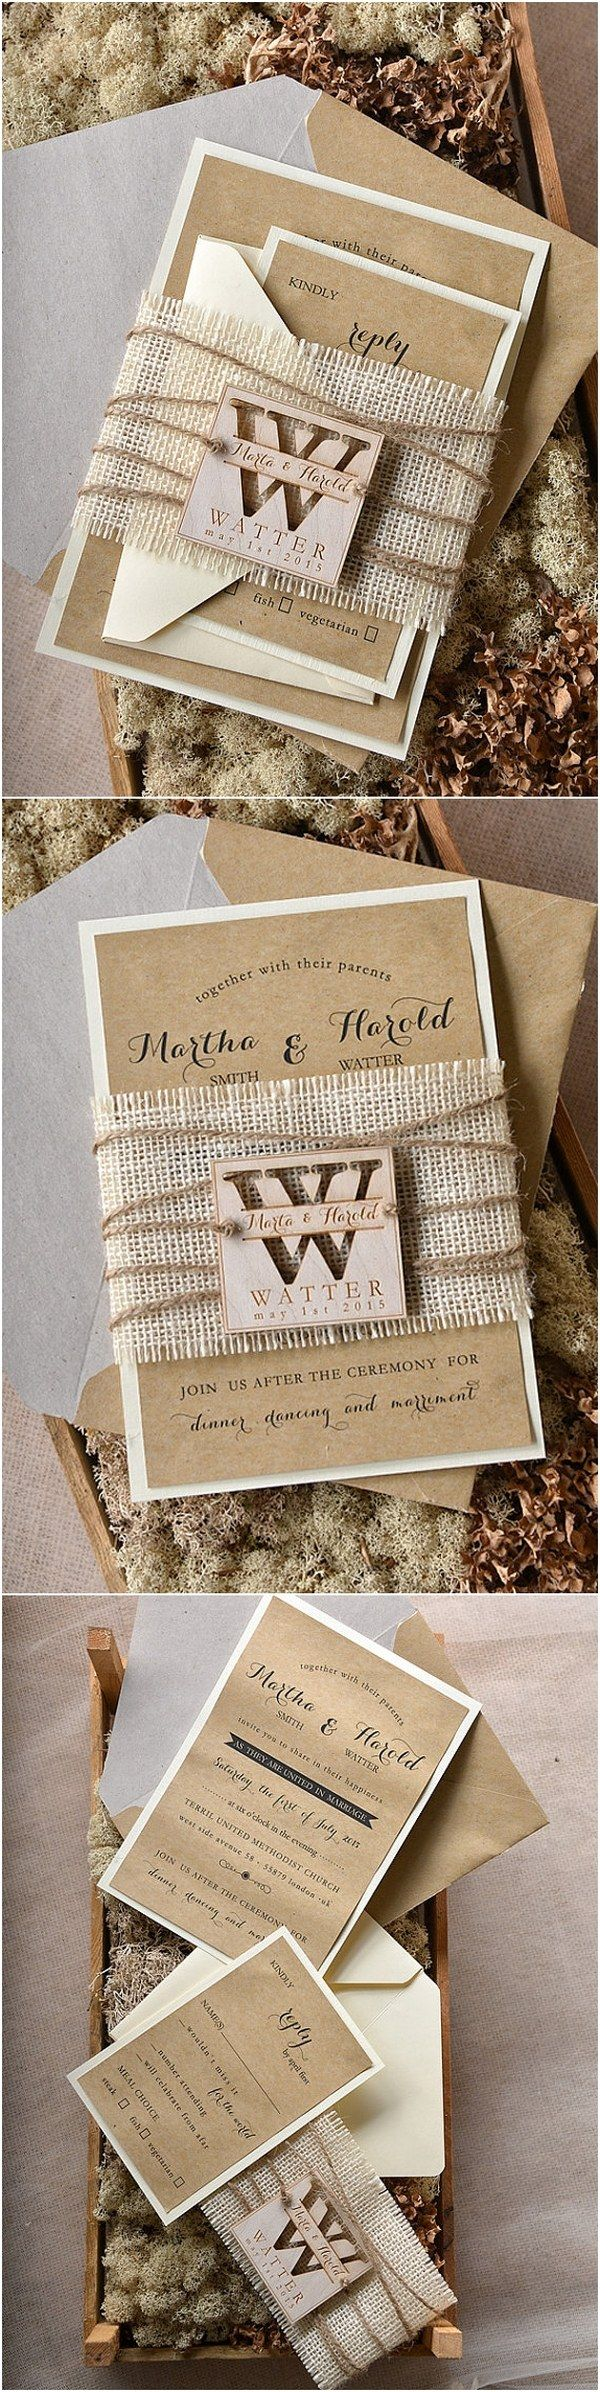 rustic country burlap wedding invitations @4LOVEPolkaDots  #rusticwedding #countryweding #weddingideas